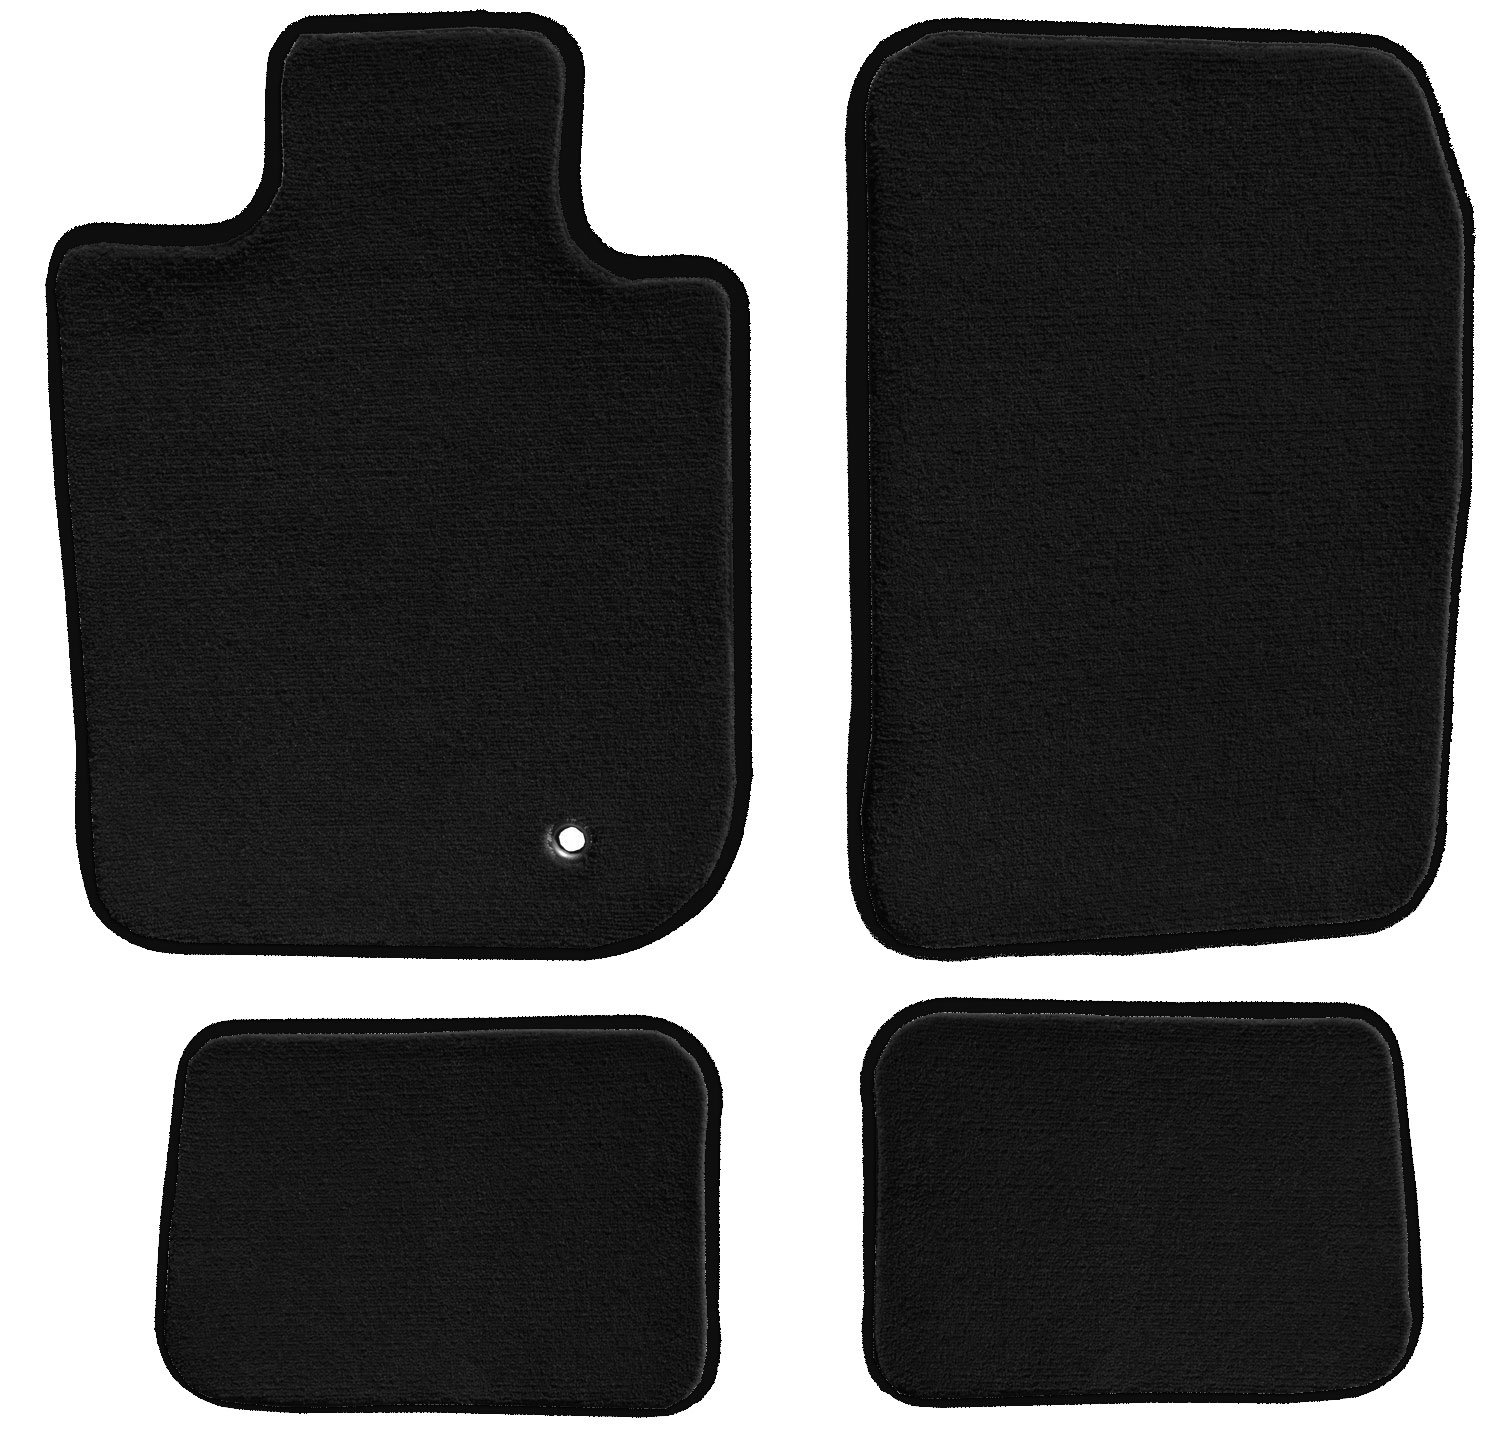 1999 GGBAILEY D4096B-S1A-BK-LP Custom Fit Automotive Carpet Floor Mats for 1997 1998 2000 Mercury Tracer Sedan Black Loop Driver Passenger /& Rear